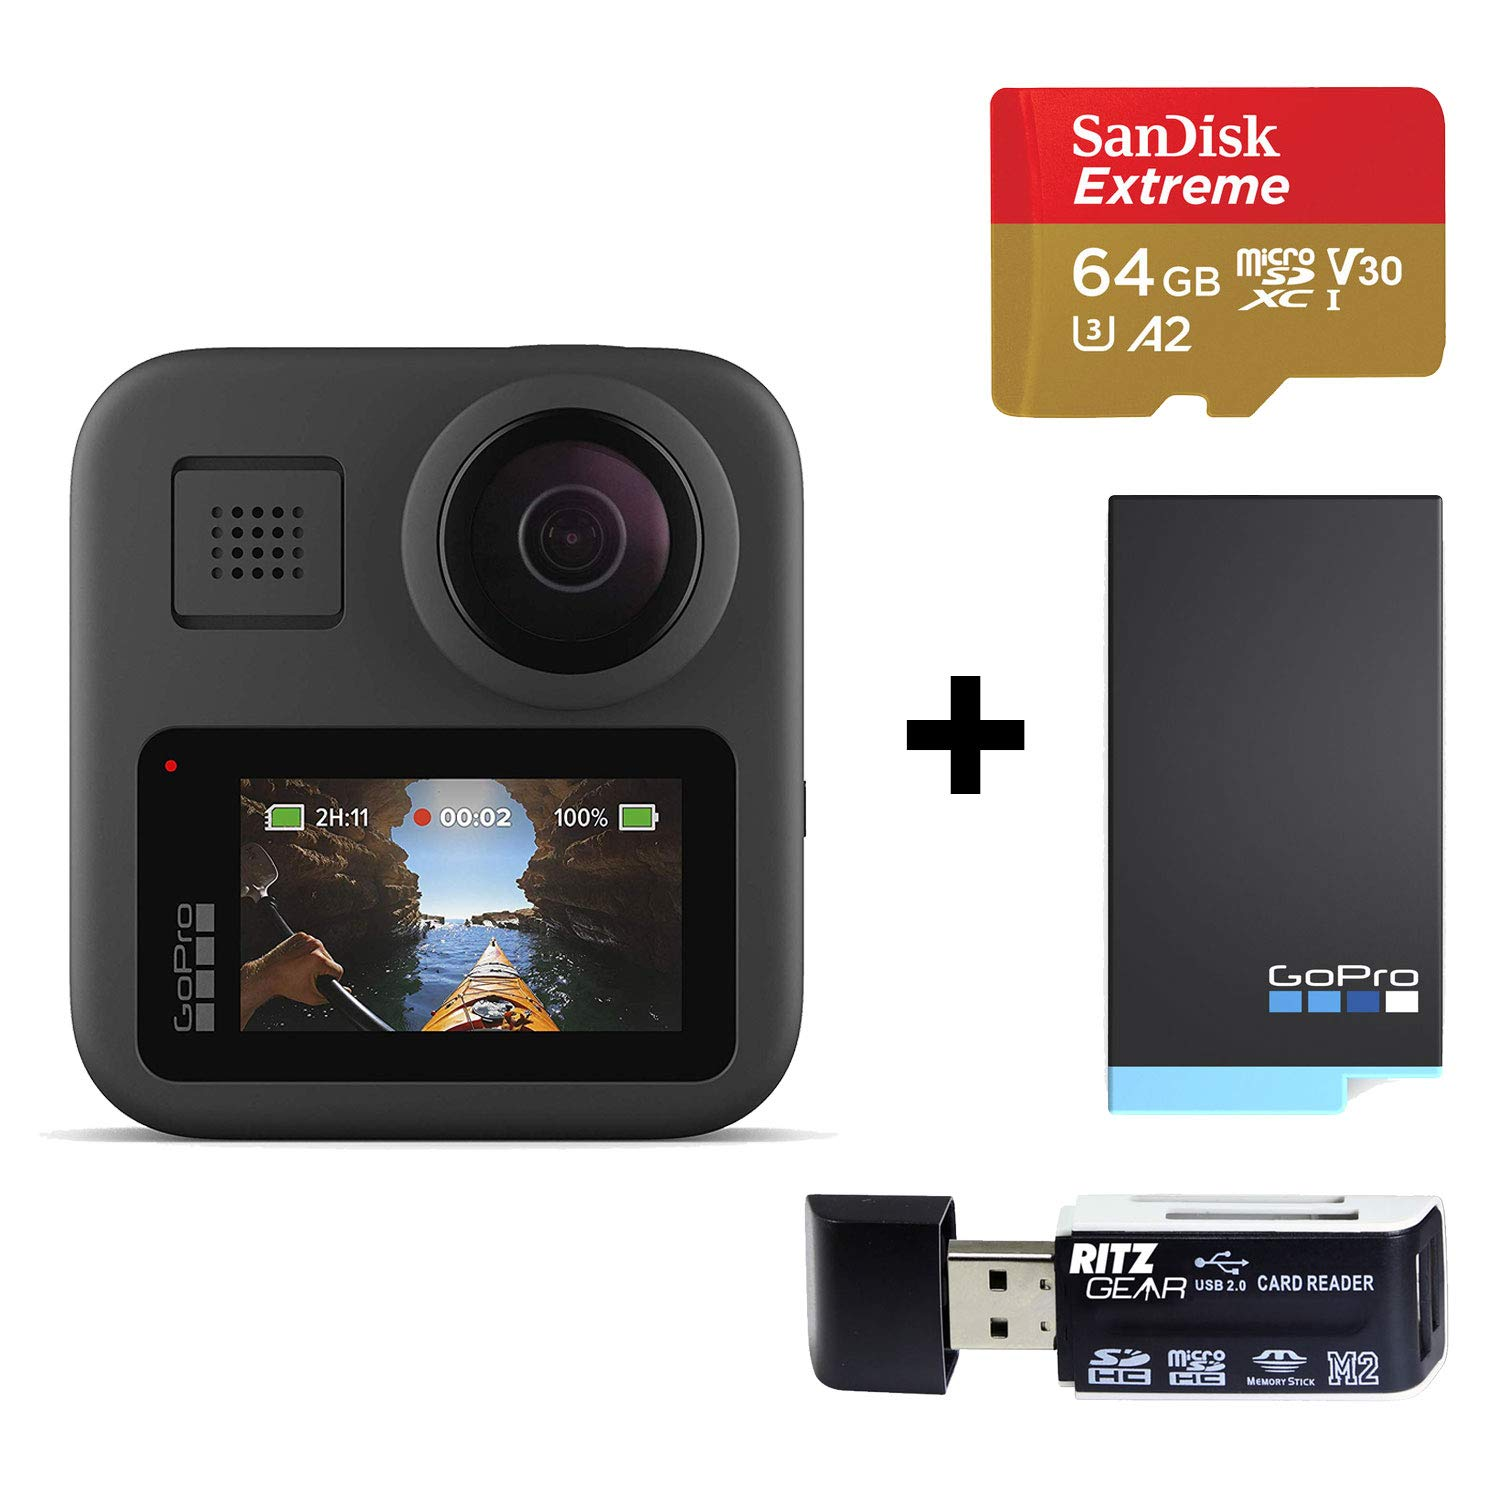 GoPro MAX — Waterproof 360 + Traditional Camera with Touch Screen Spherical 5.6K30 HD Video 16.6MP 360 Photos 1080p with Spare GoPro Max Battery, Sandisk 64GB Memory Card, and Ritz Gear Card Reader